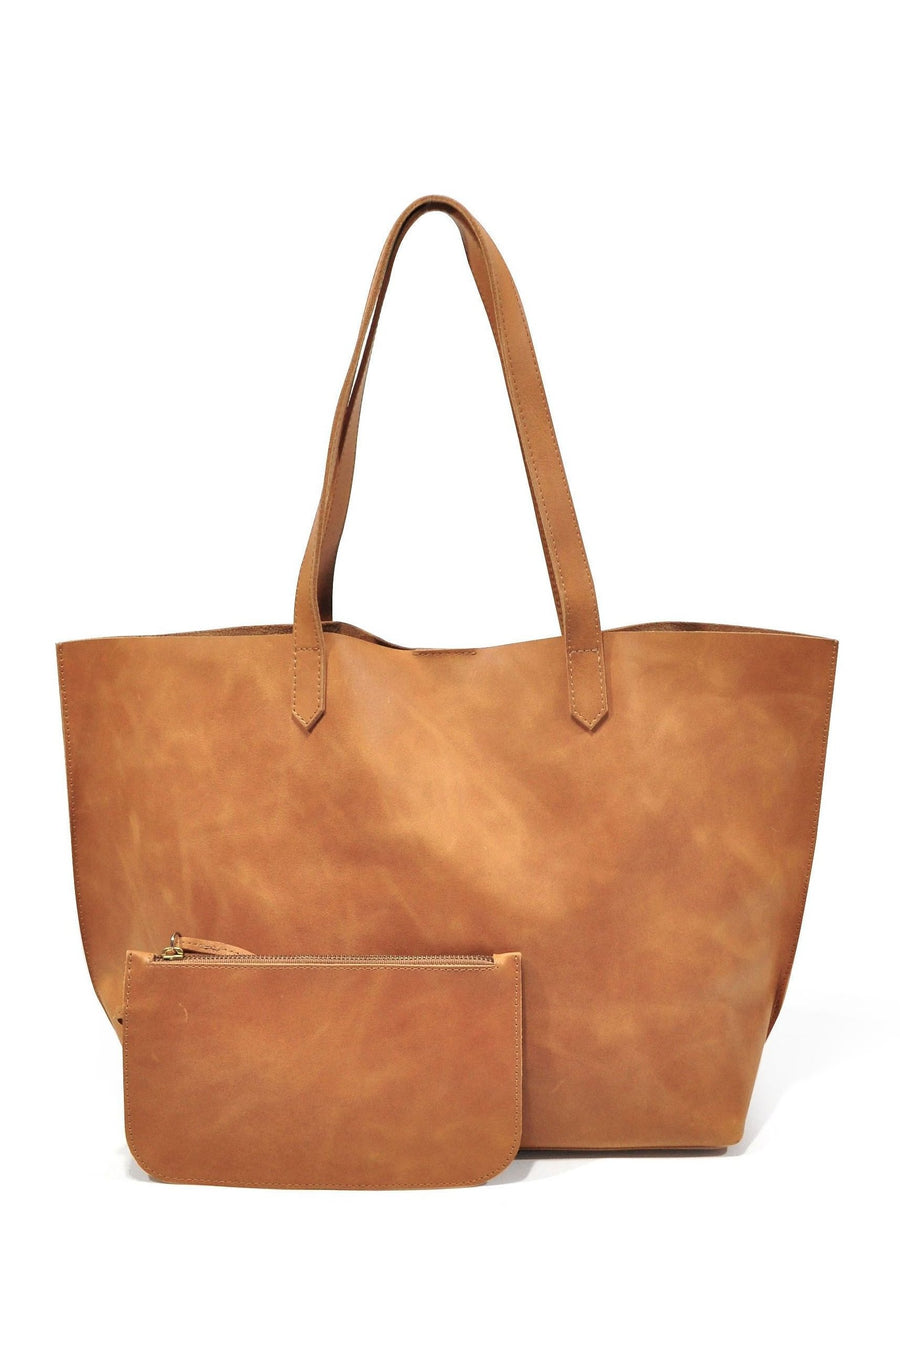 Edge Leather Tote VINTAGE CAMEL - Positive Elements